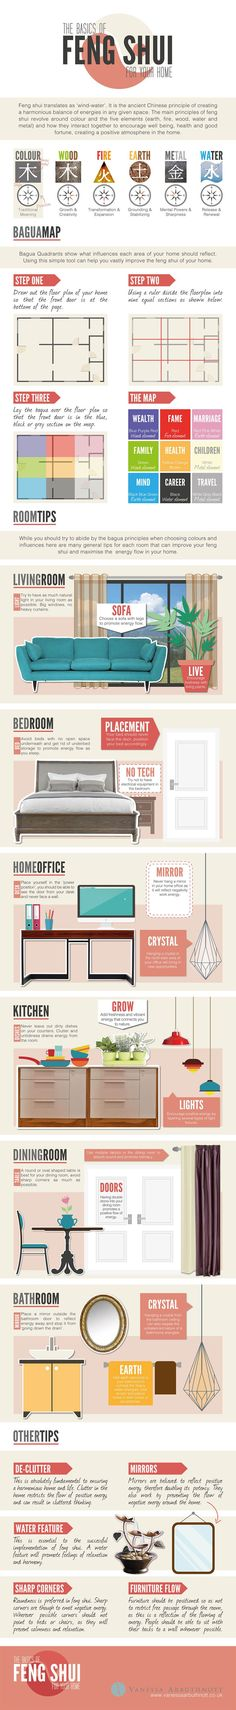 INFOGRAPHIC: Your basic guide to Feng Shui for the home | Inhabitat